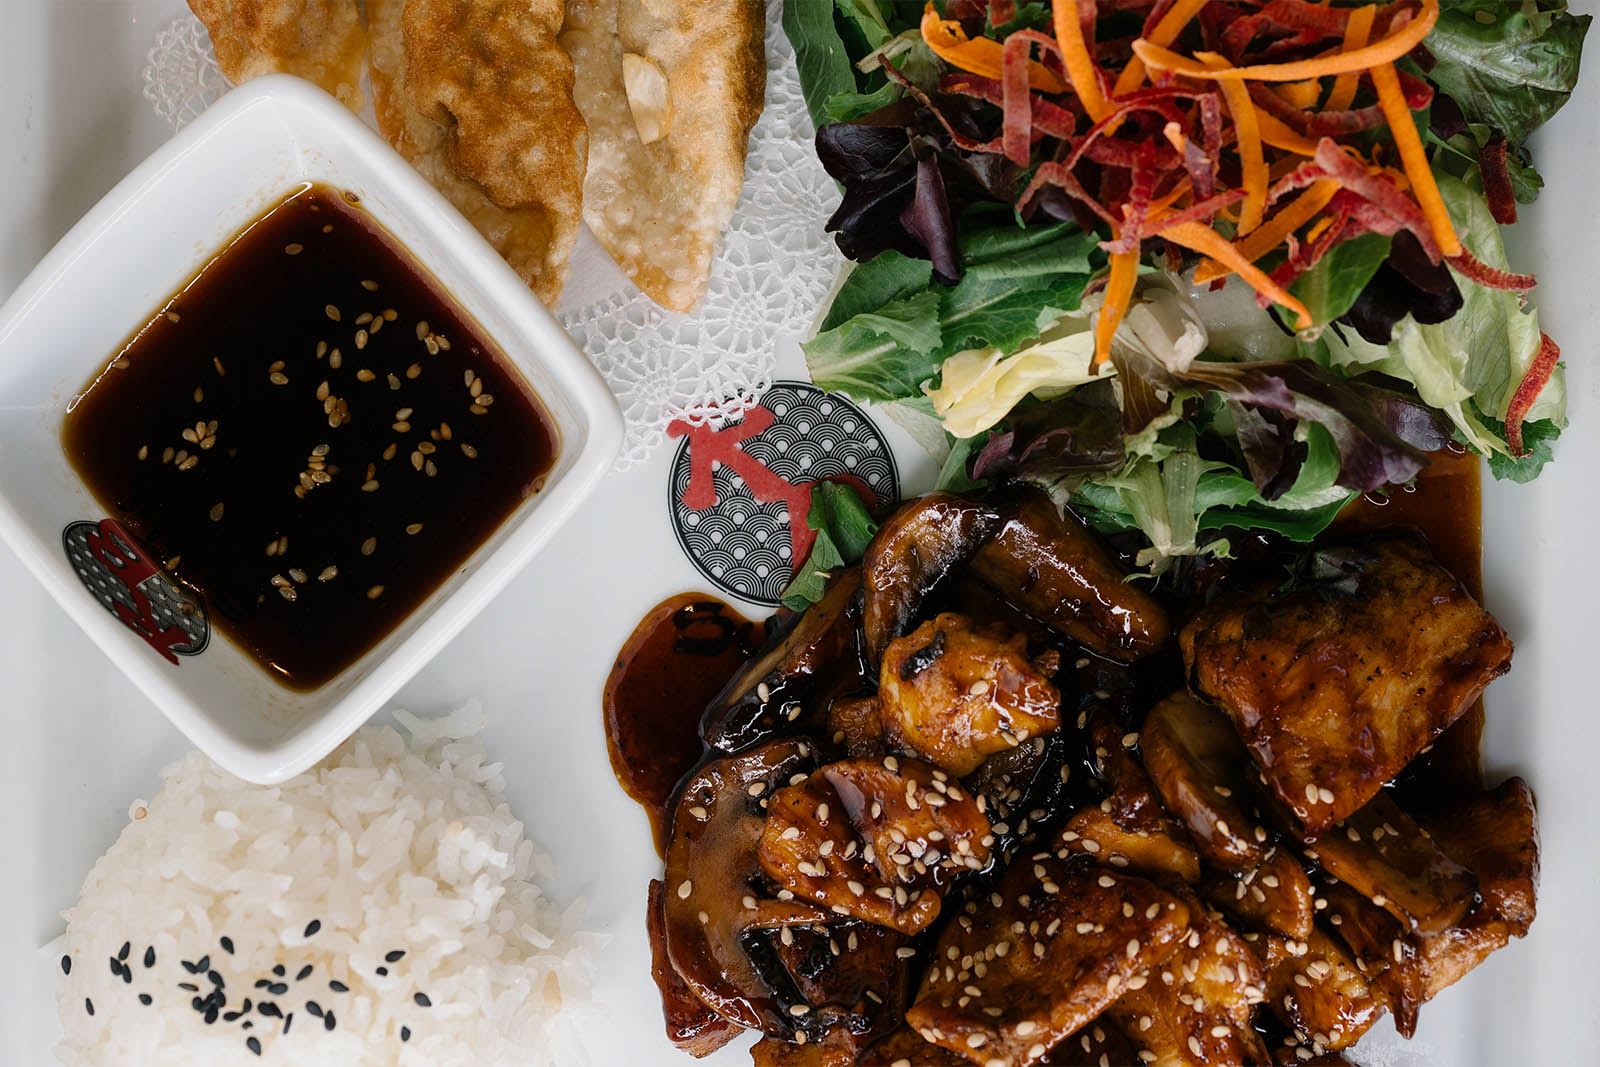 Teriyaki plate with Teriyaki chicken, rice, salad and gyoza